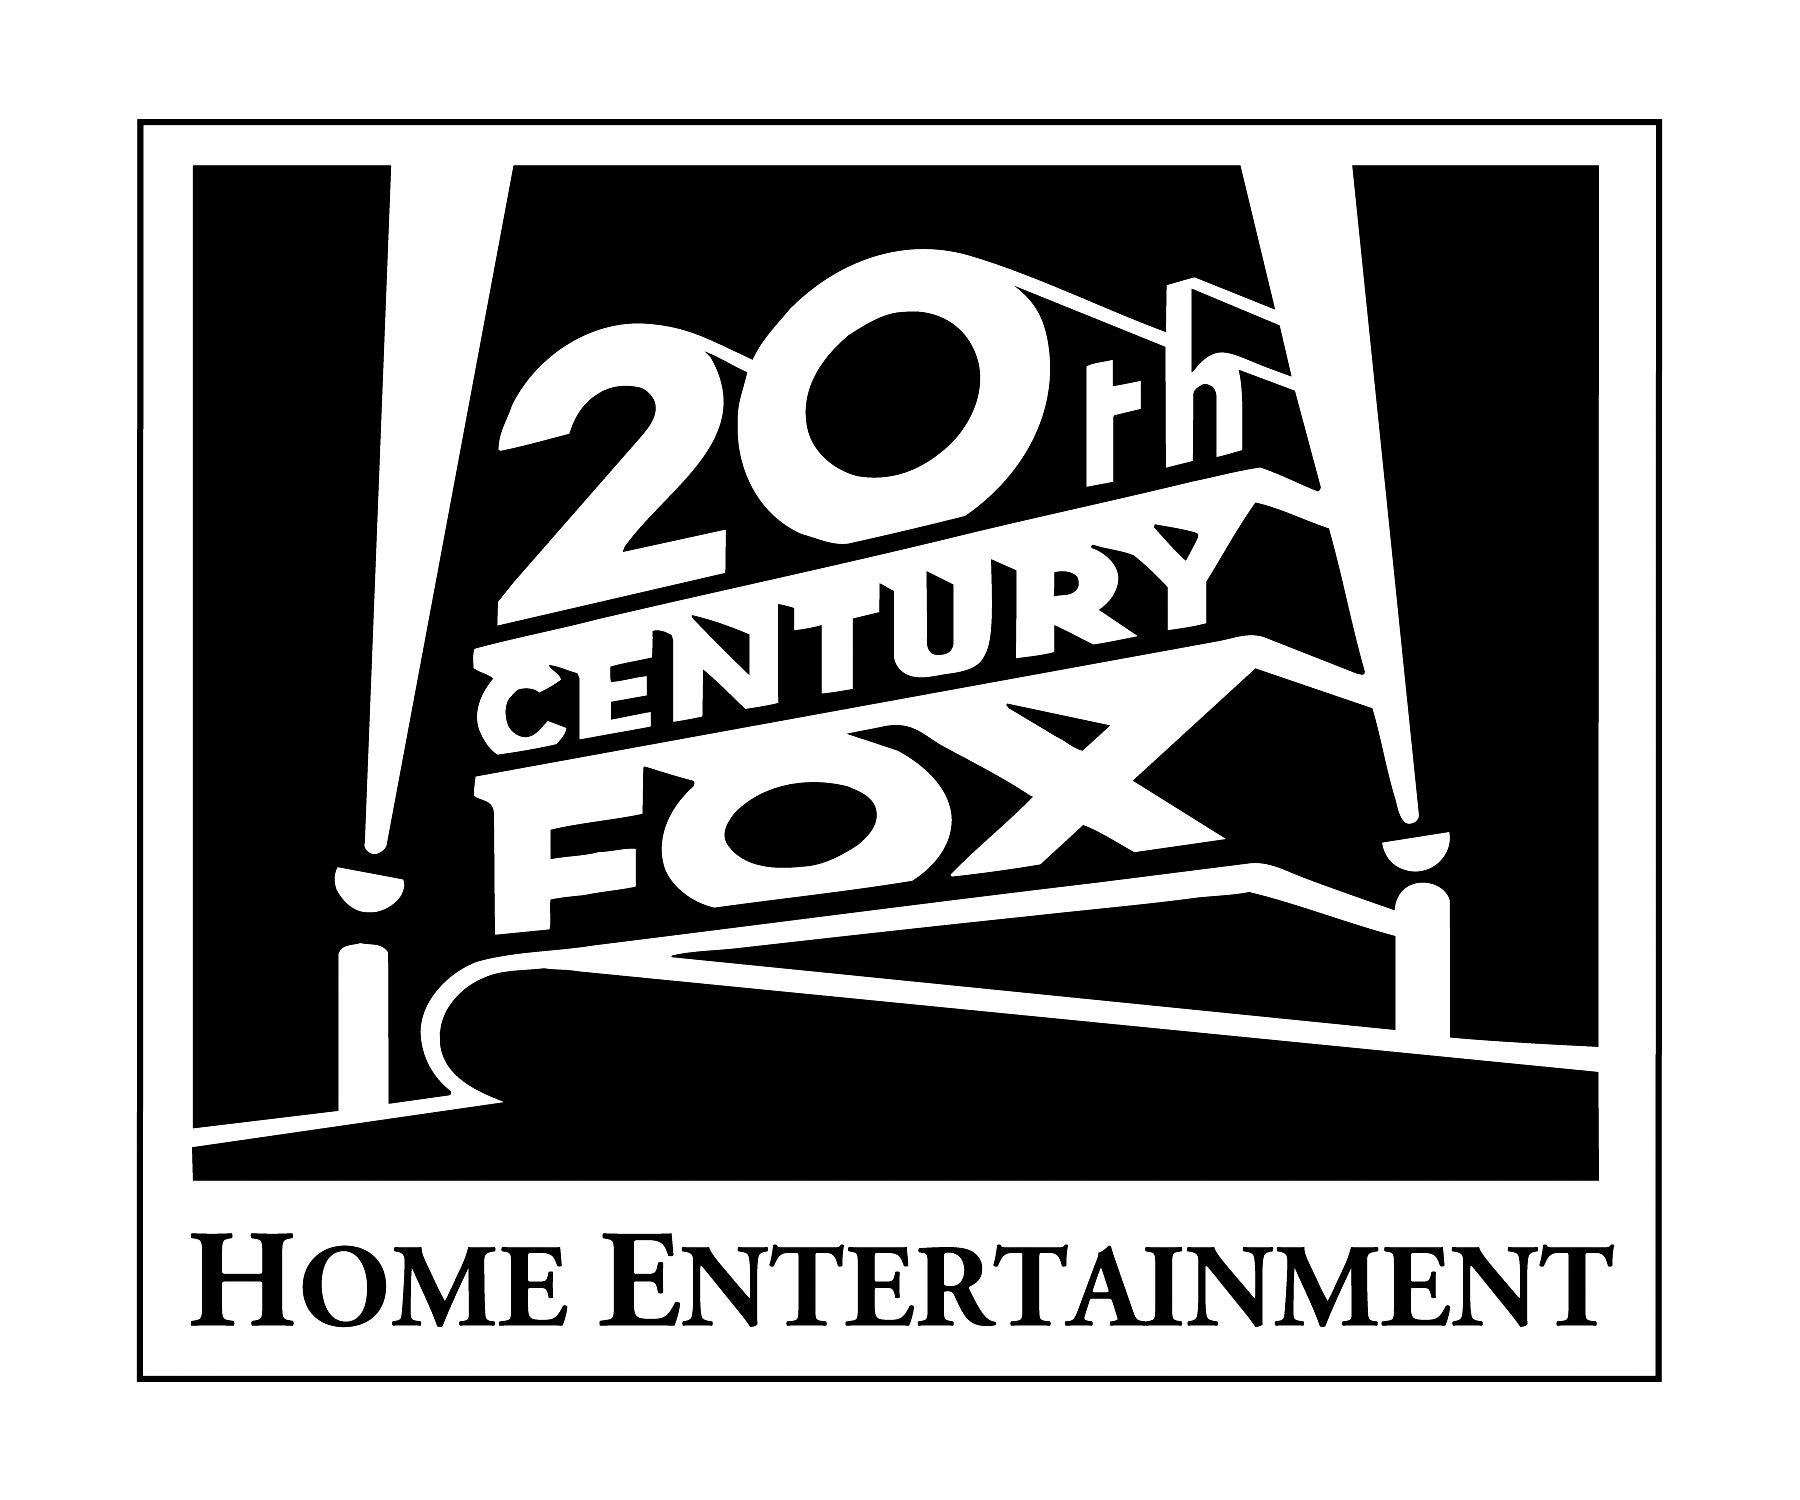 20th Century renard accueil Entertainment Print Logo